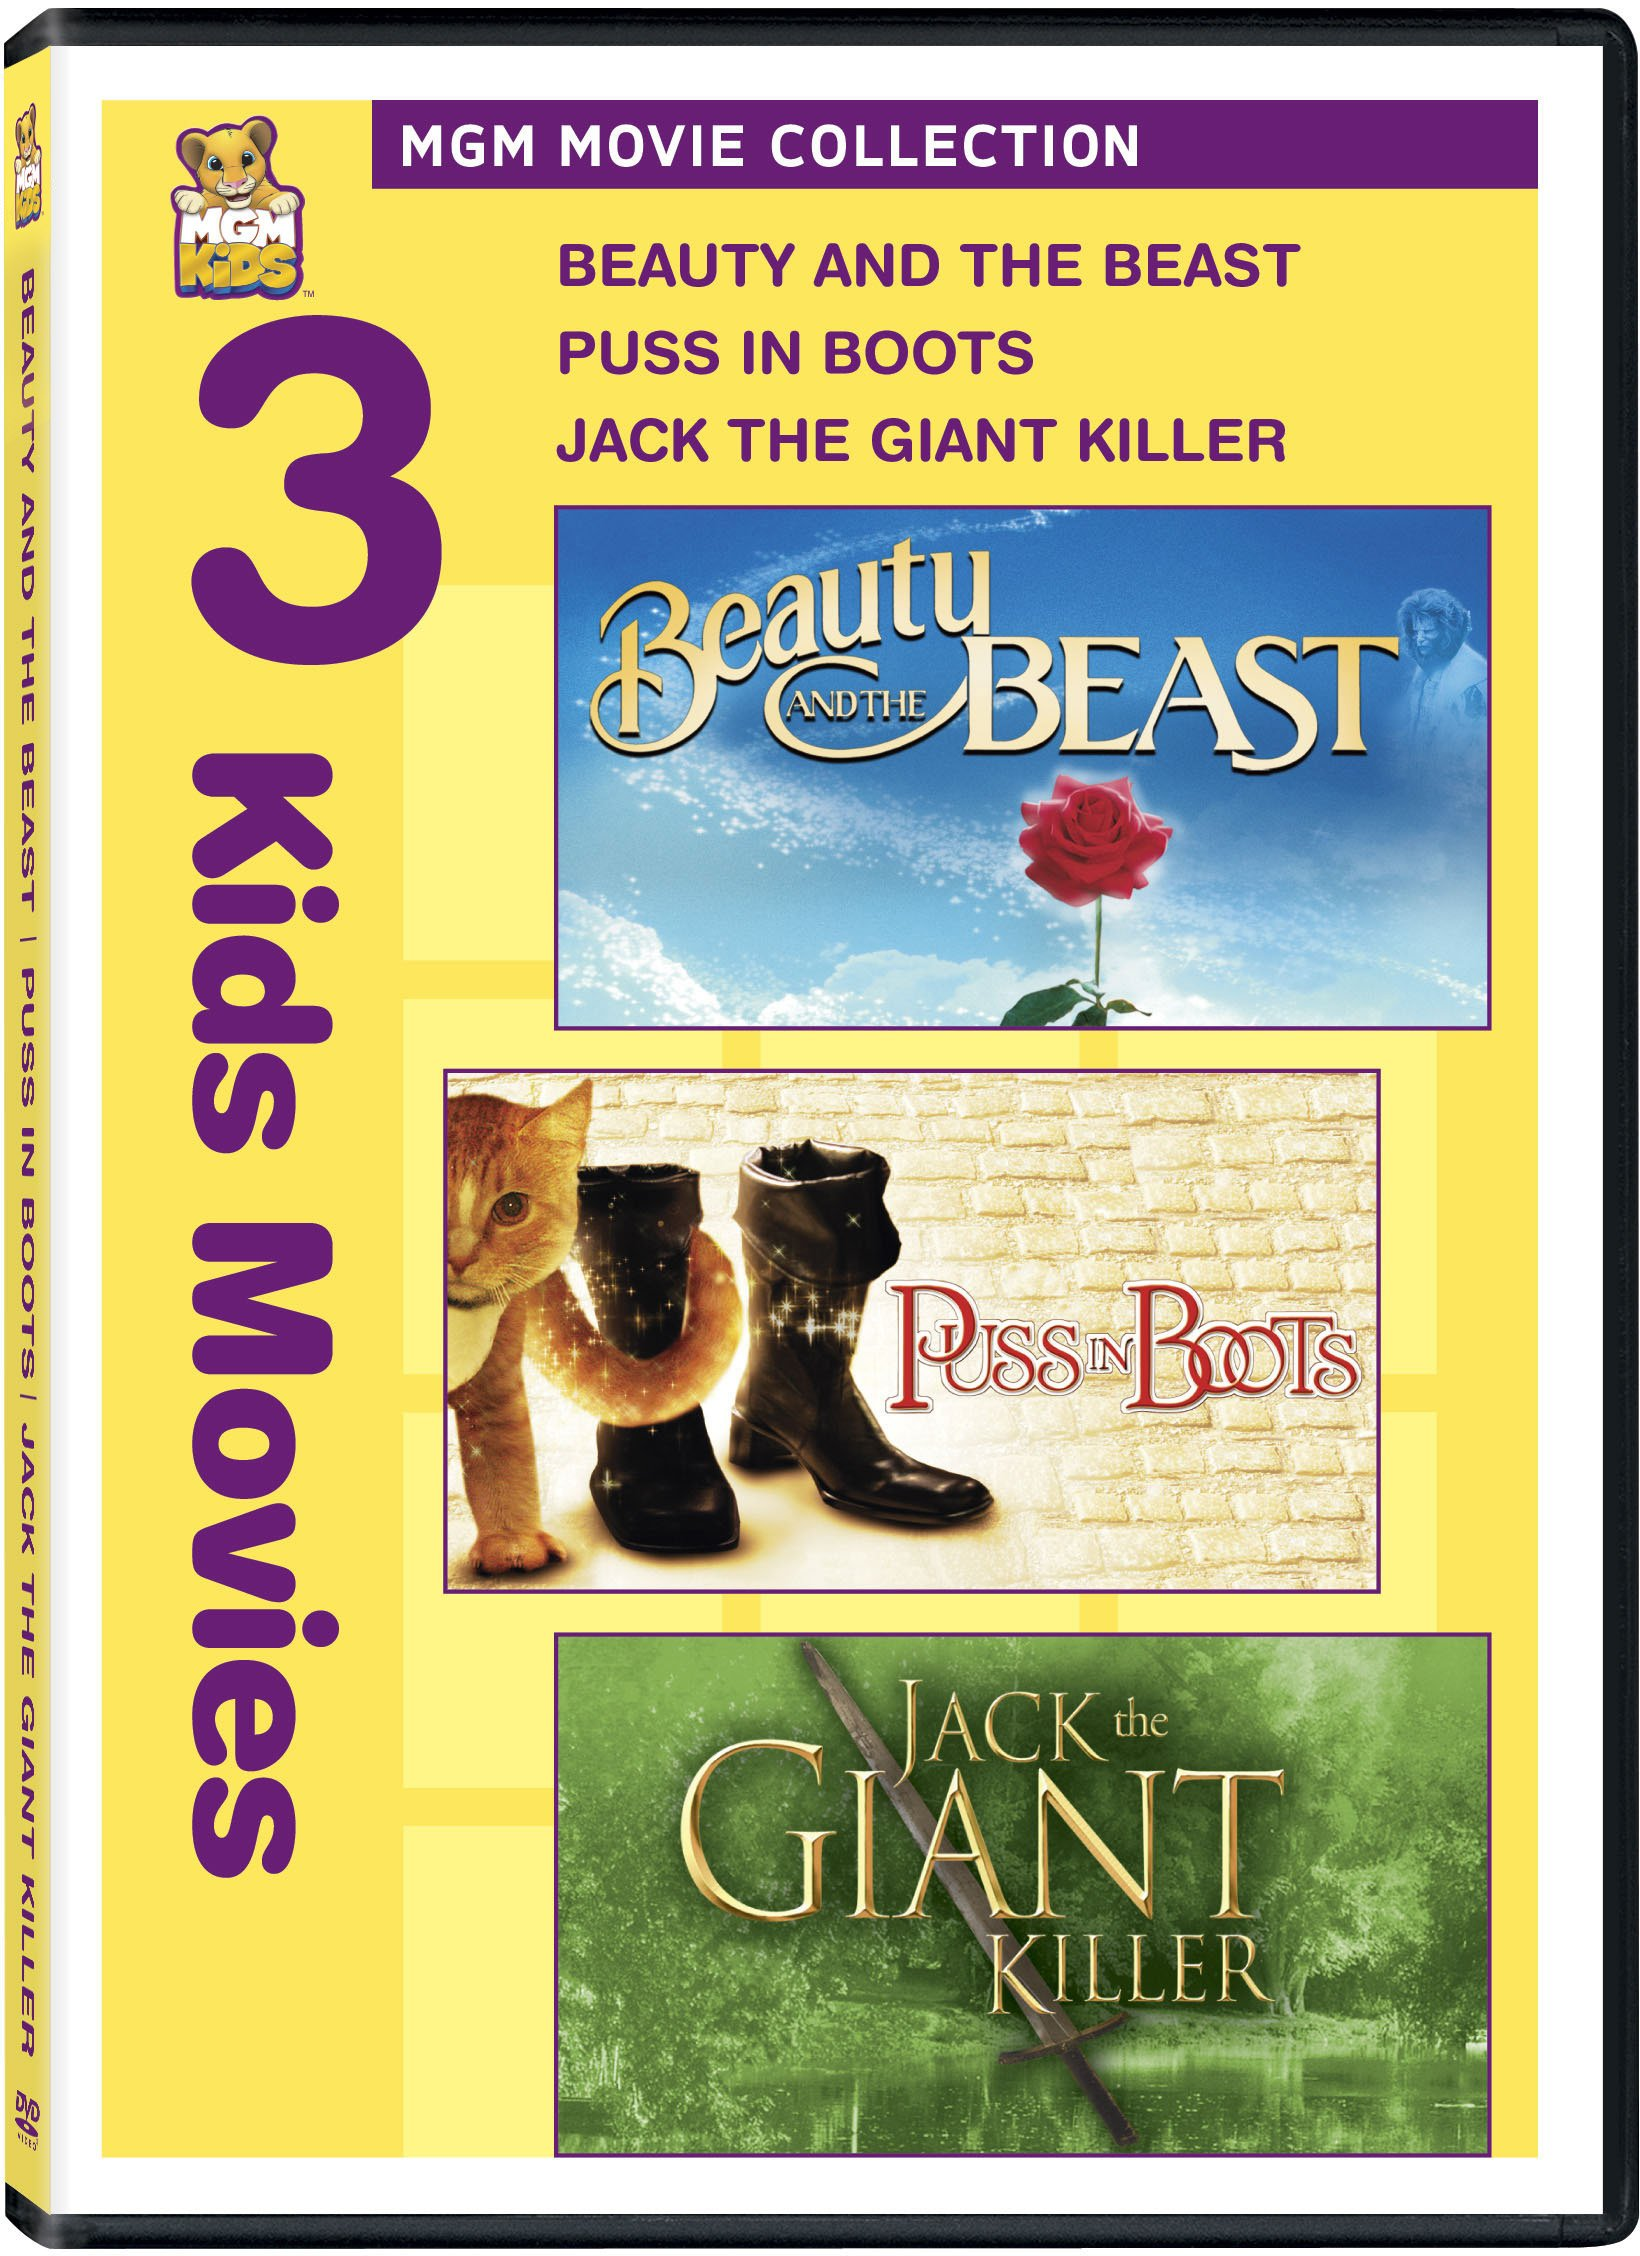 Beauty and the Beast / Puss in Boots / Jack the Giant Killer (Widescreen, Pan & Scan, 2PC)